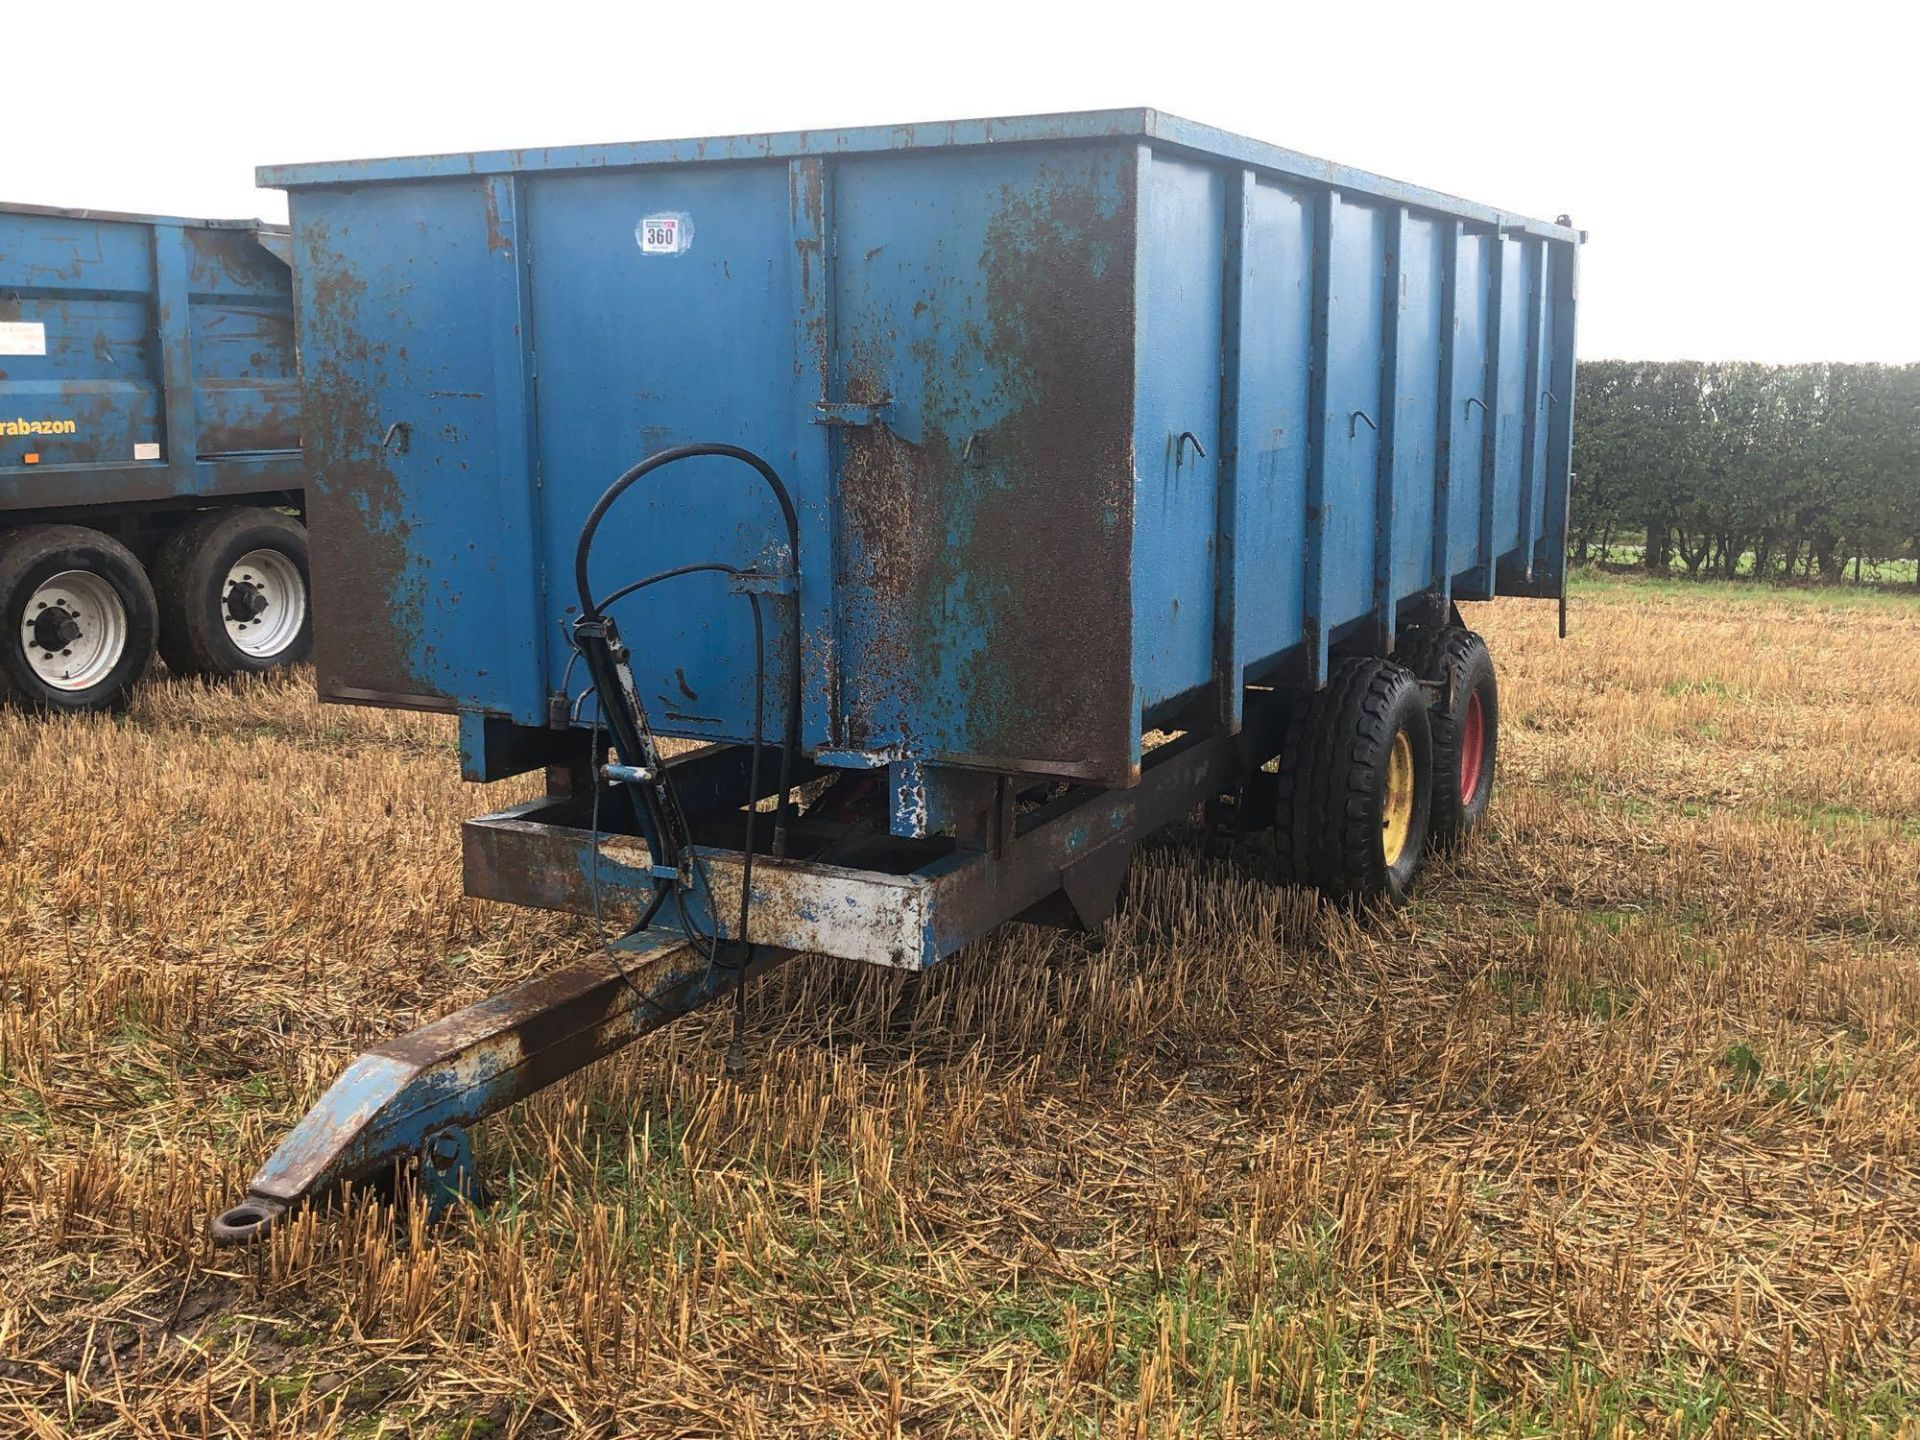 8t twin axle trailer with manual rear door and grain chute. C/w silage sides. On 12.5/80-15.3 wheels - Image 3 of 8